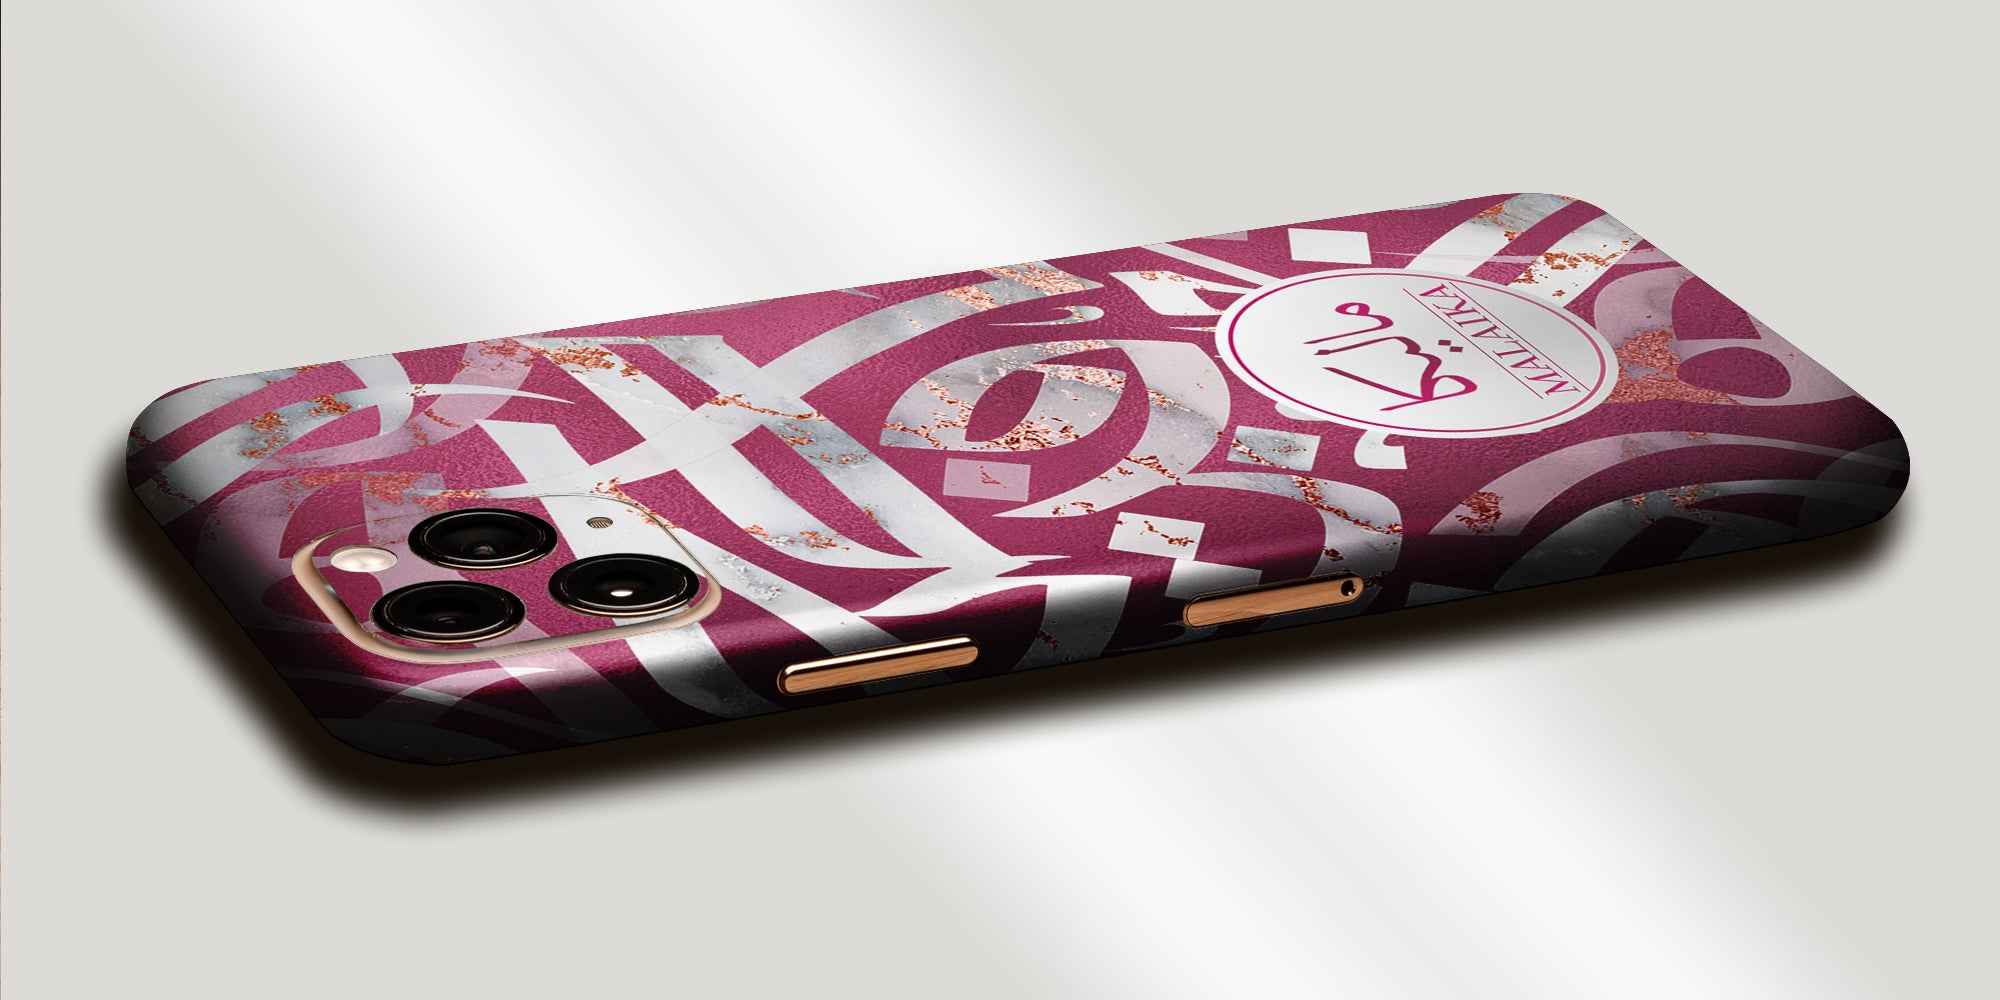 Arabic Calligraphy by Asad Decal Skin With Personalised Arabic Name Phone Wrap  - Pink